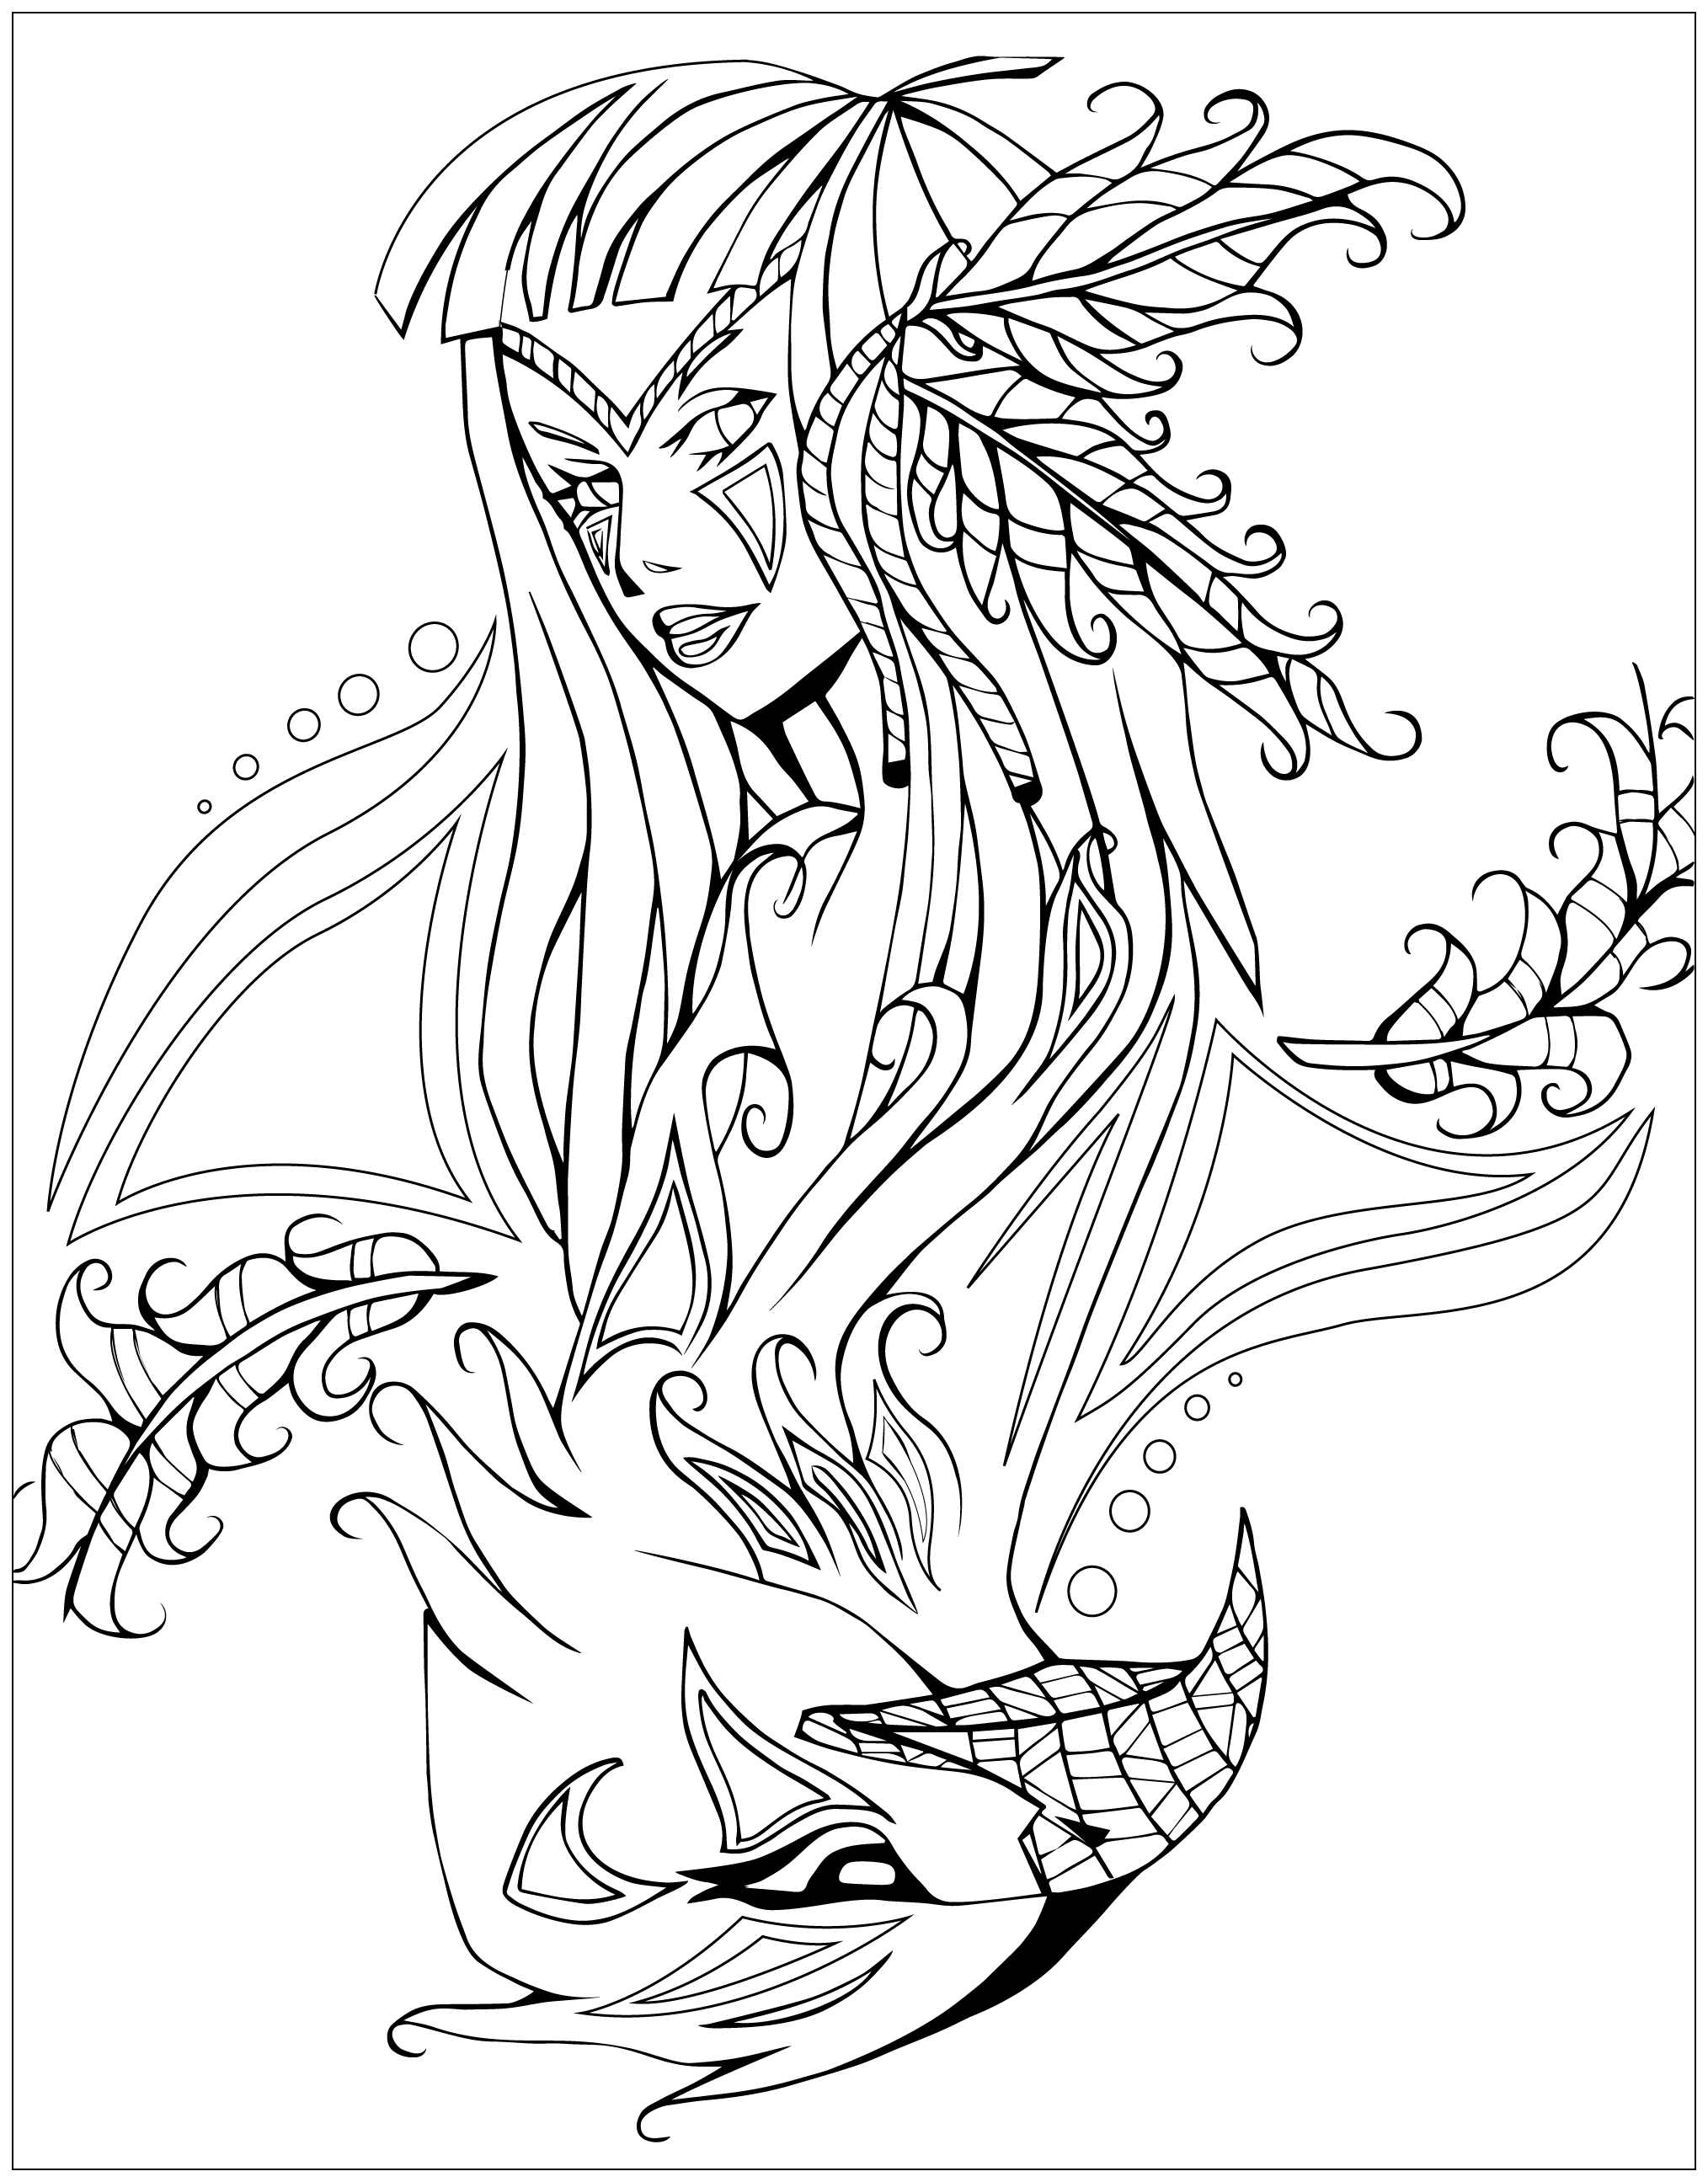 native art coloring pages native american coloring book luxury indian headdress coloring pages native art